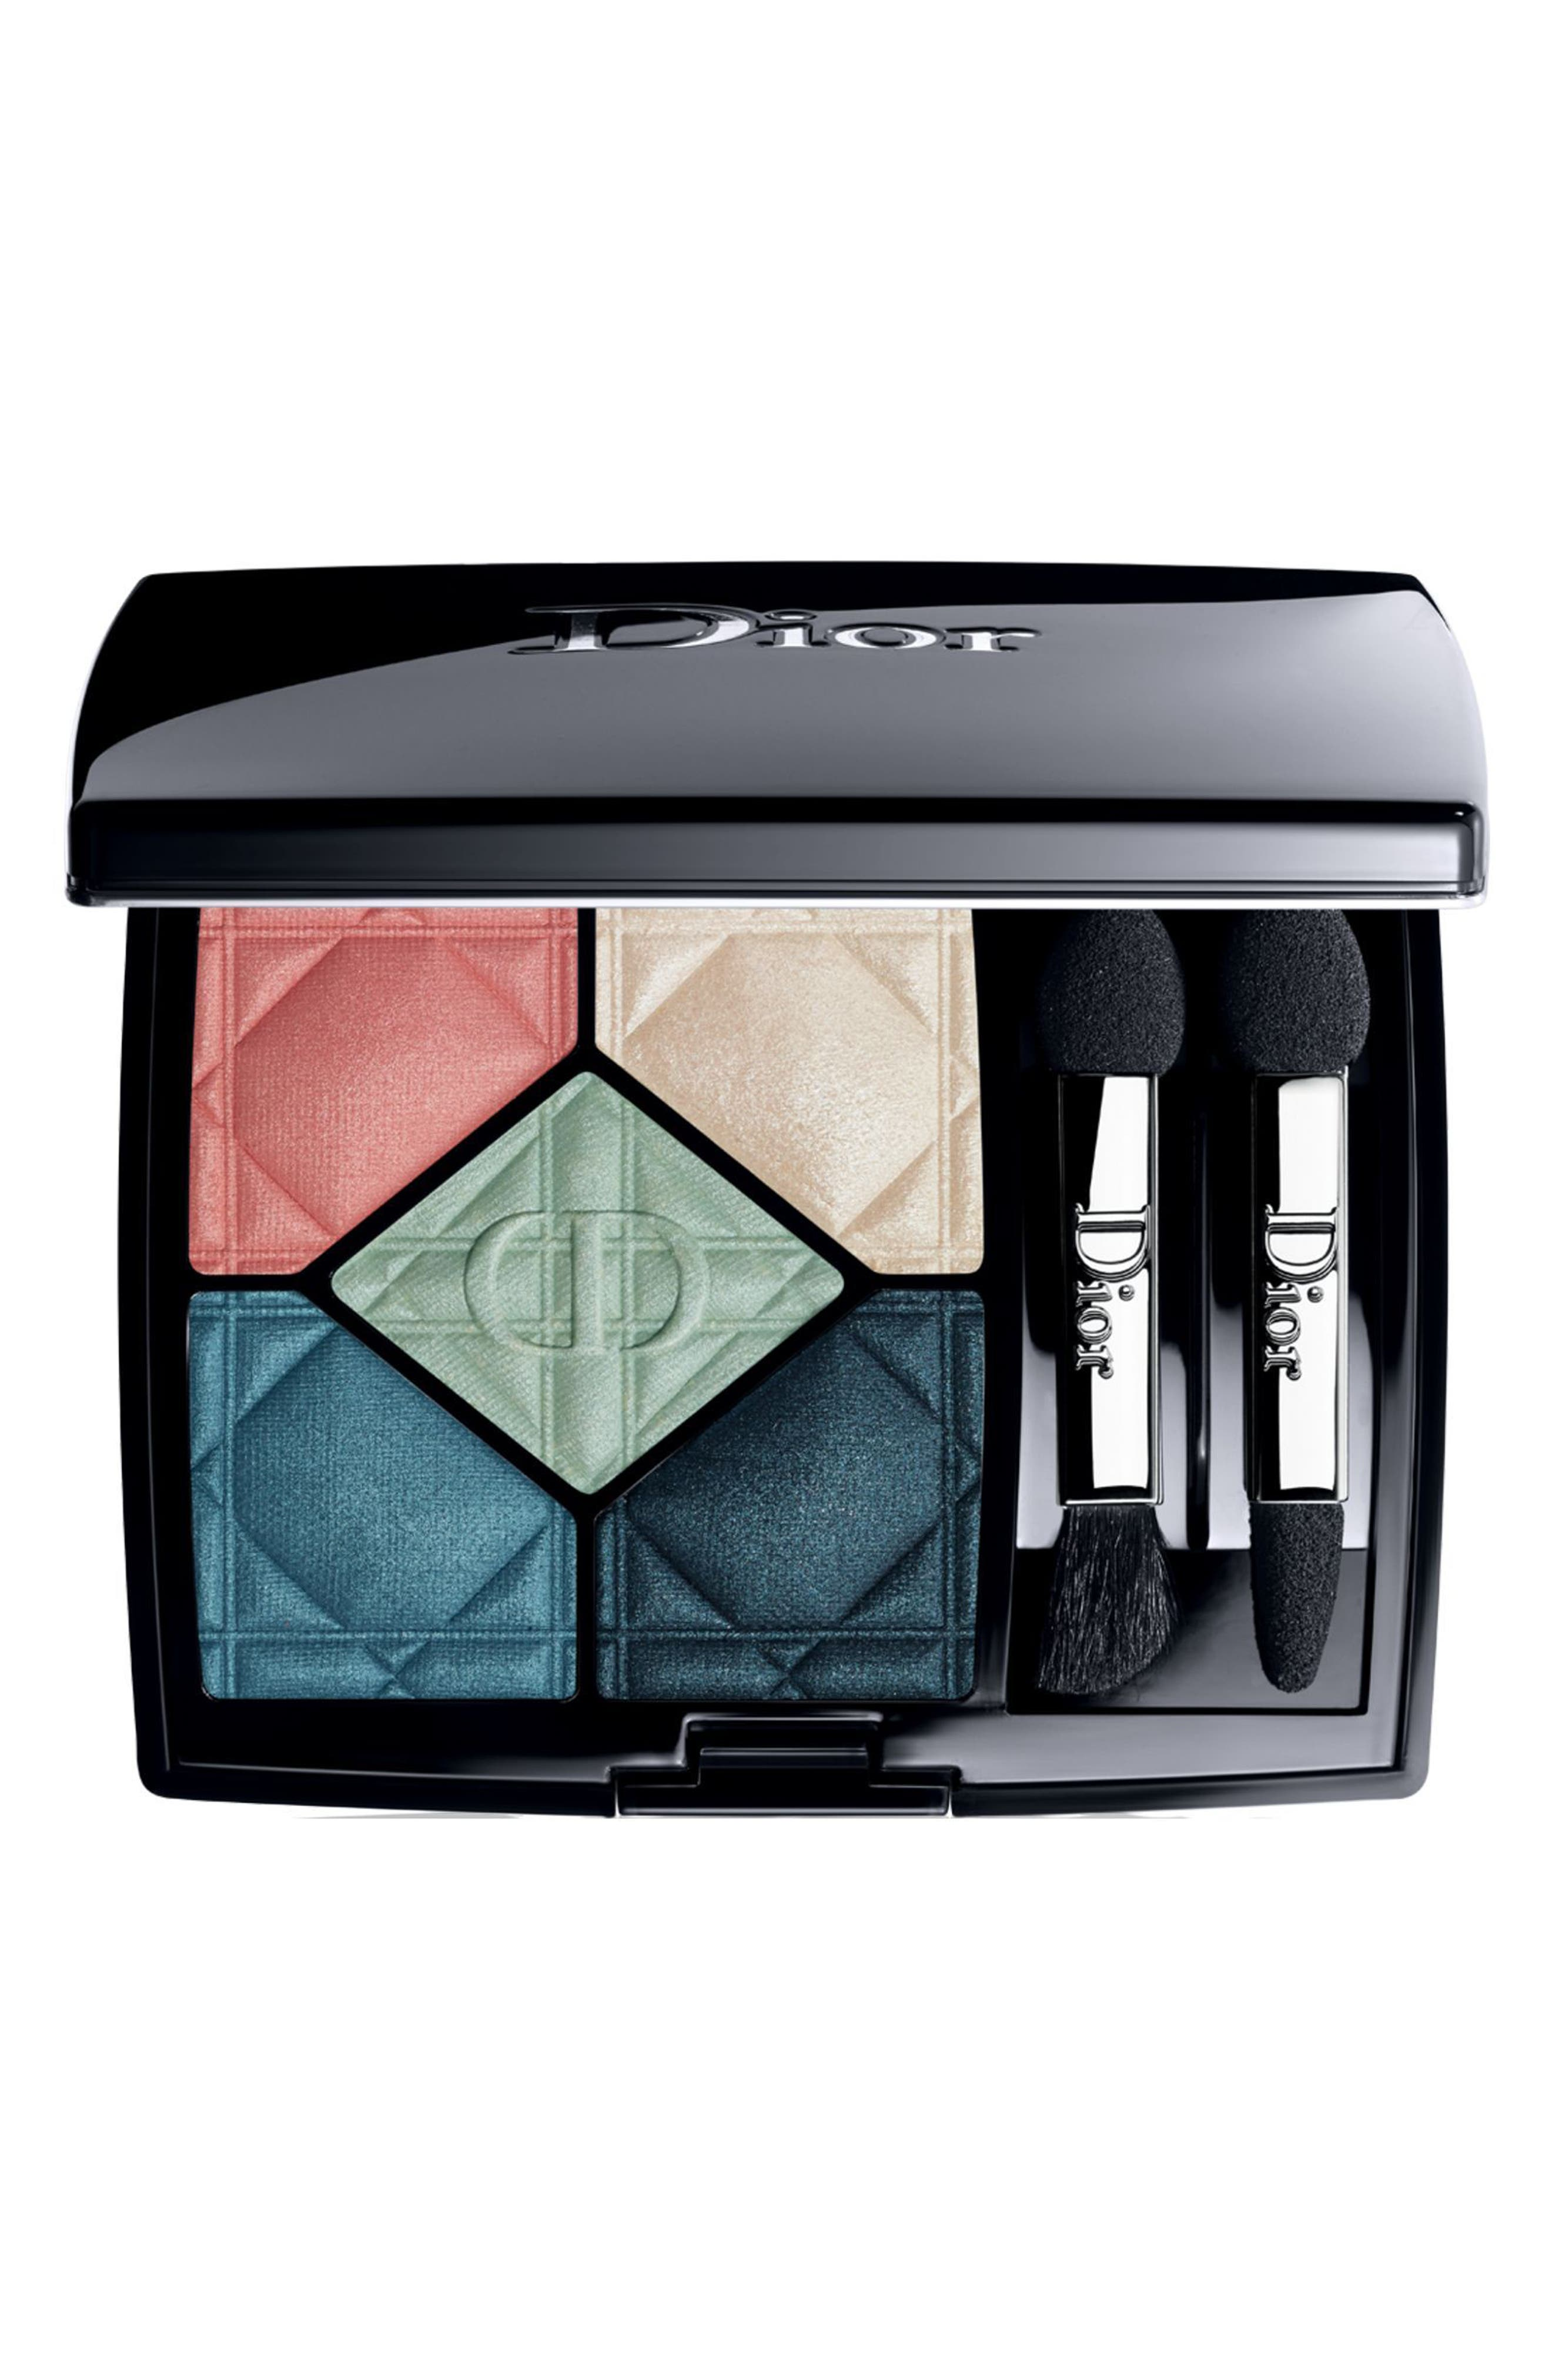 Dior 5 Couleurs Couture Eyeshadow Palette - 357 Electrify